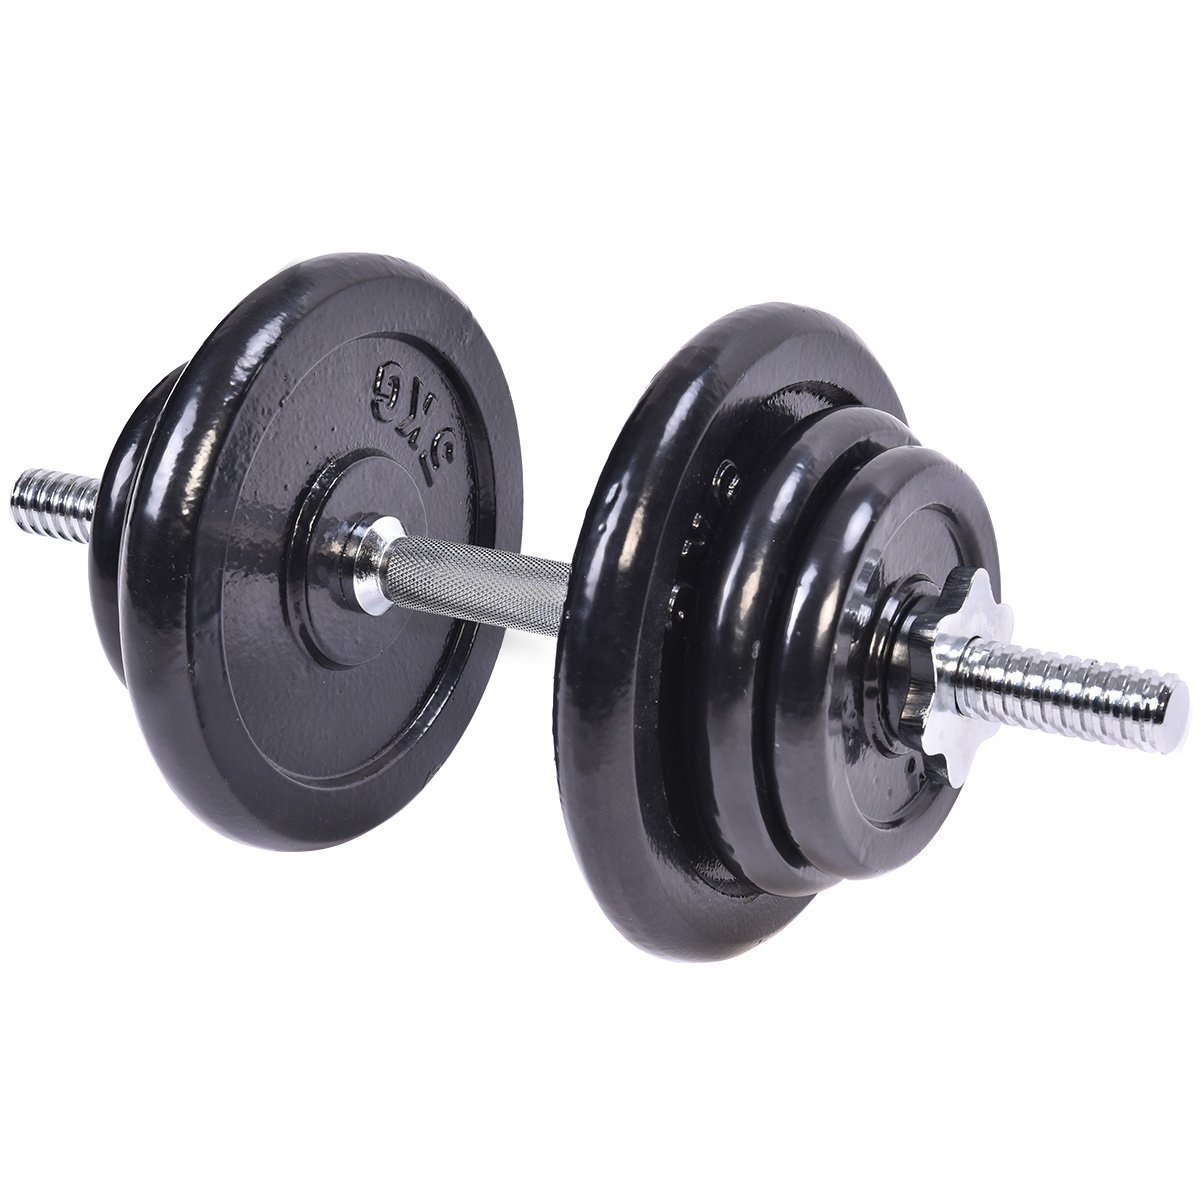 Giantex 44 LB Weight Dumbbell Set